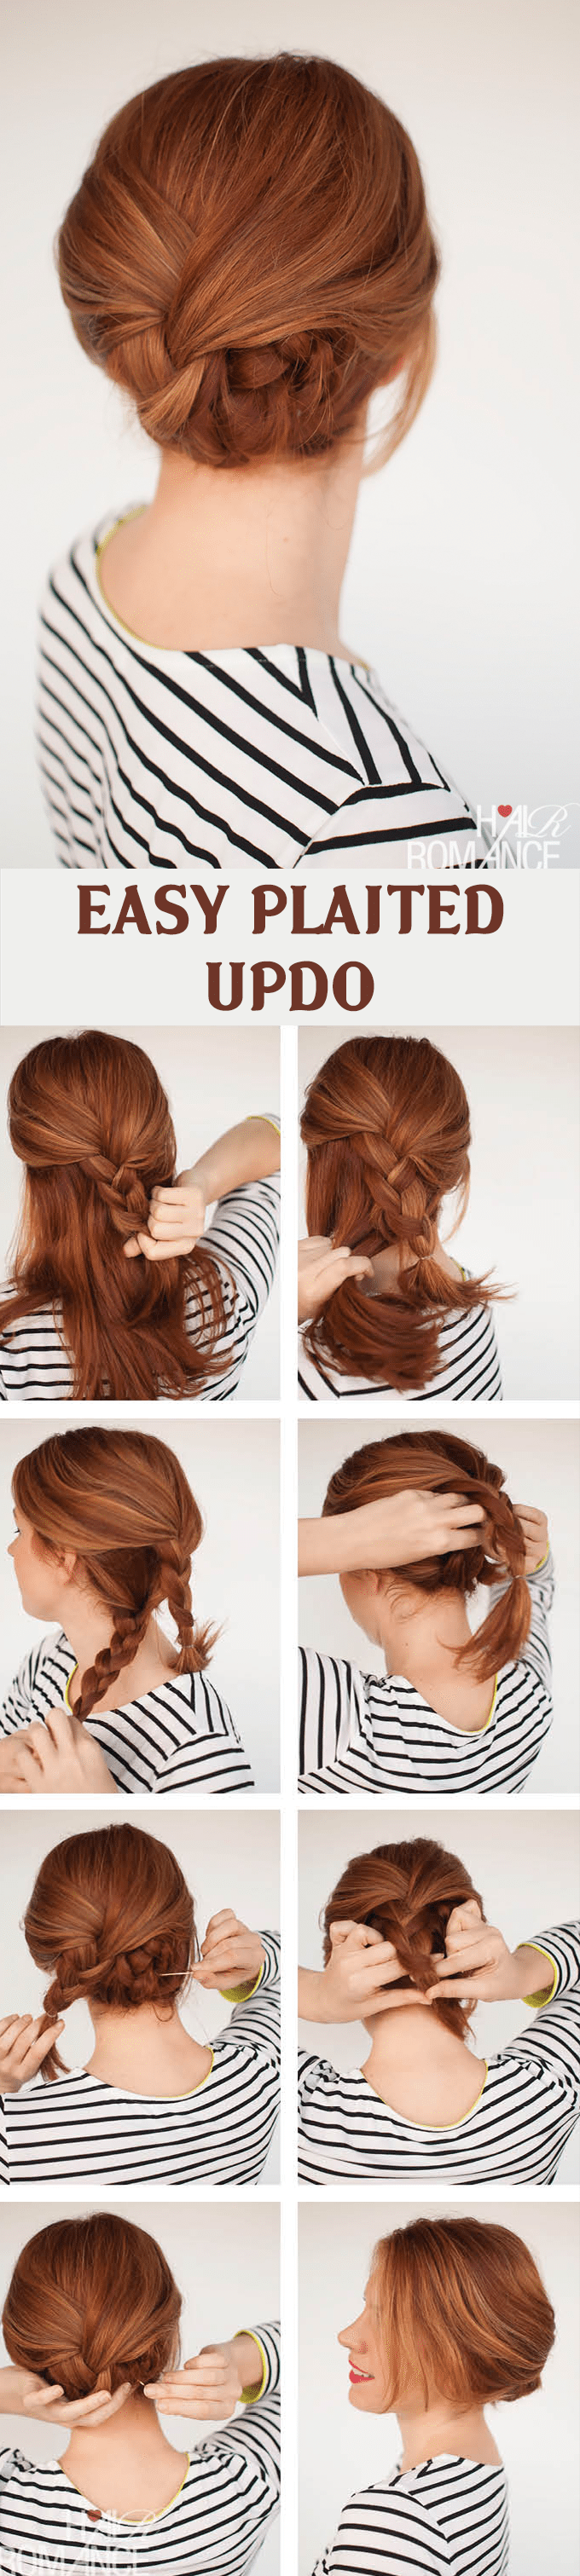 EASY PLAITED UPDO HAIRSTYLE